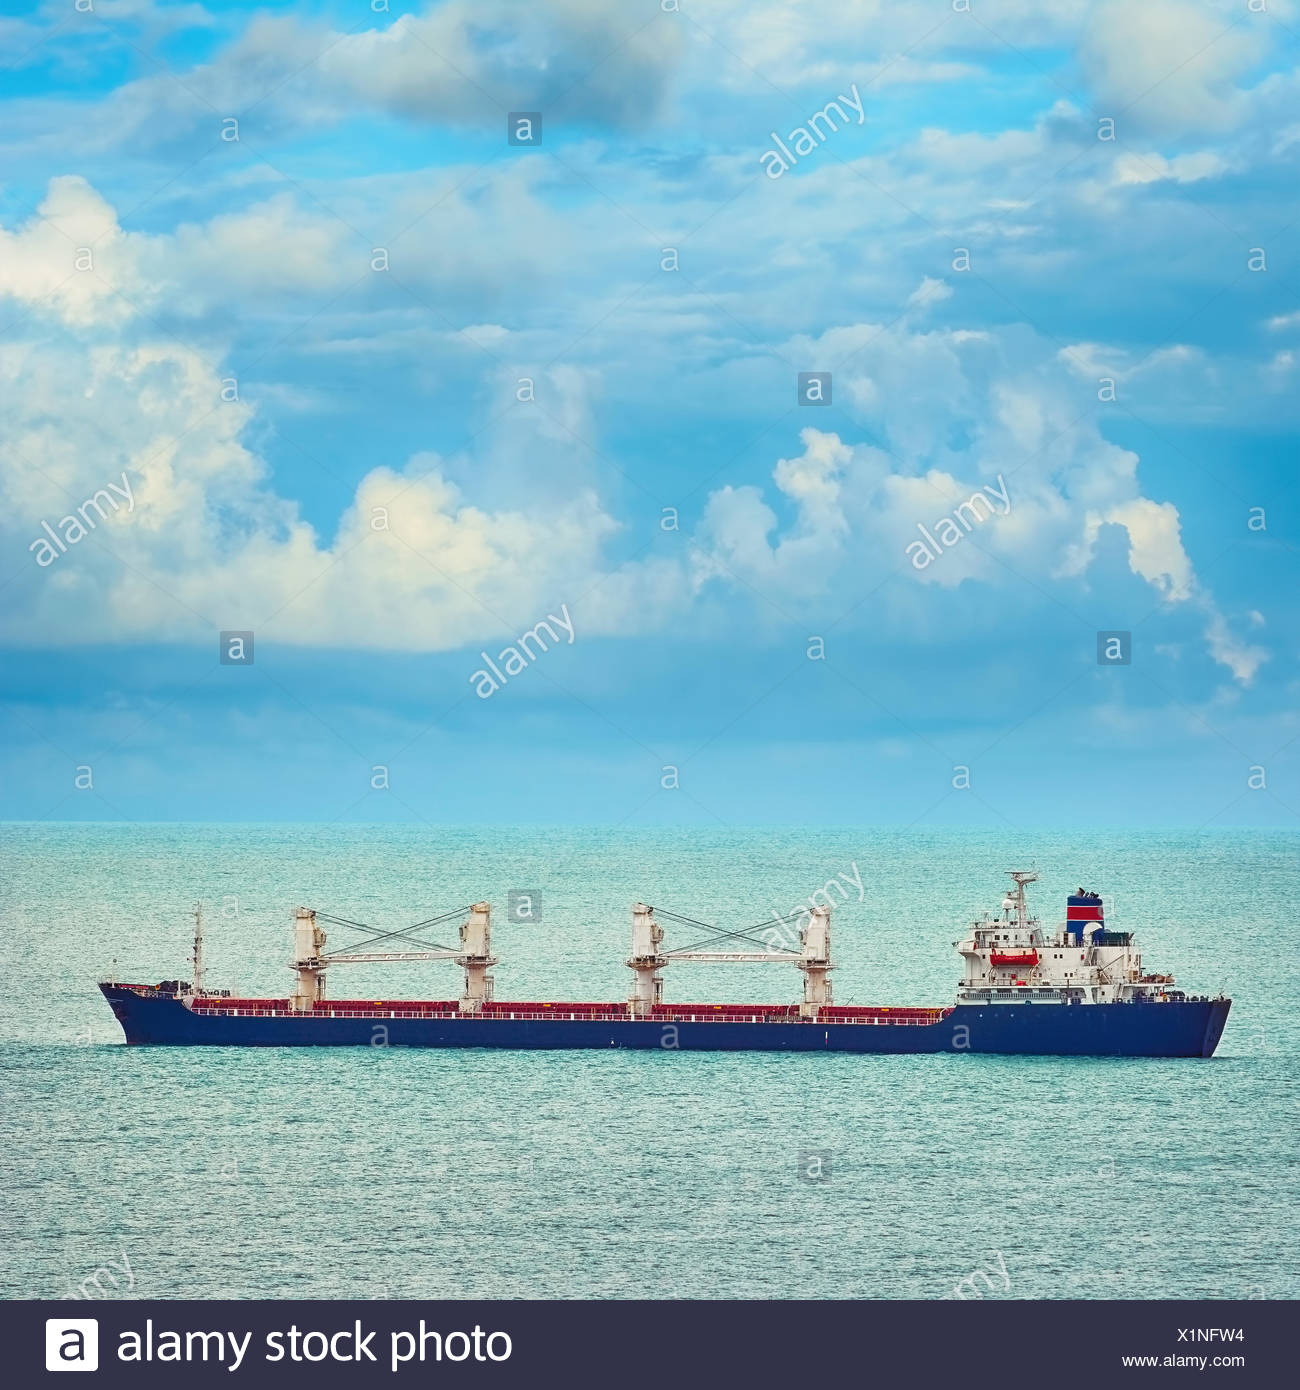 Bulk Carrier Ship - Stock Image